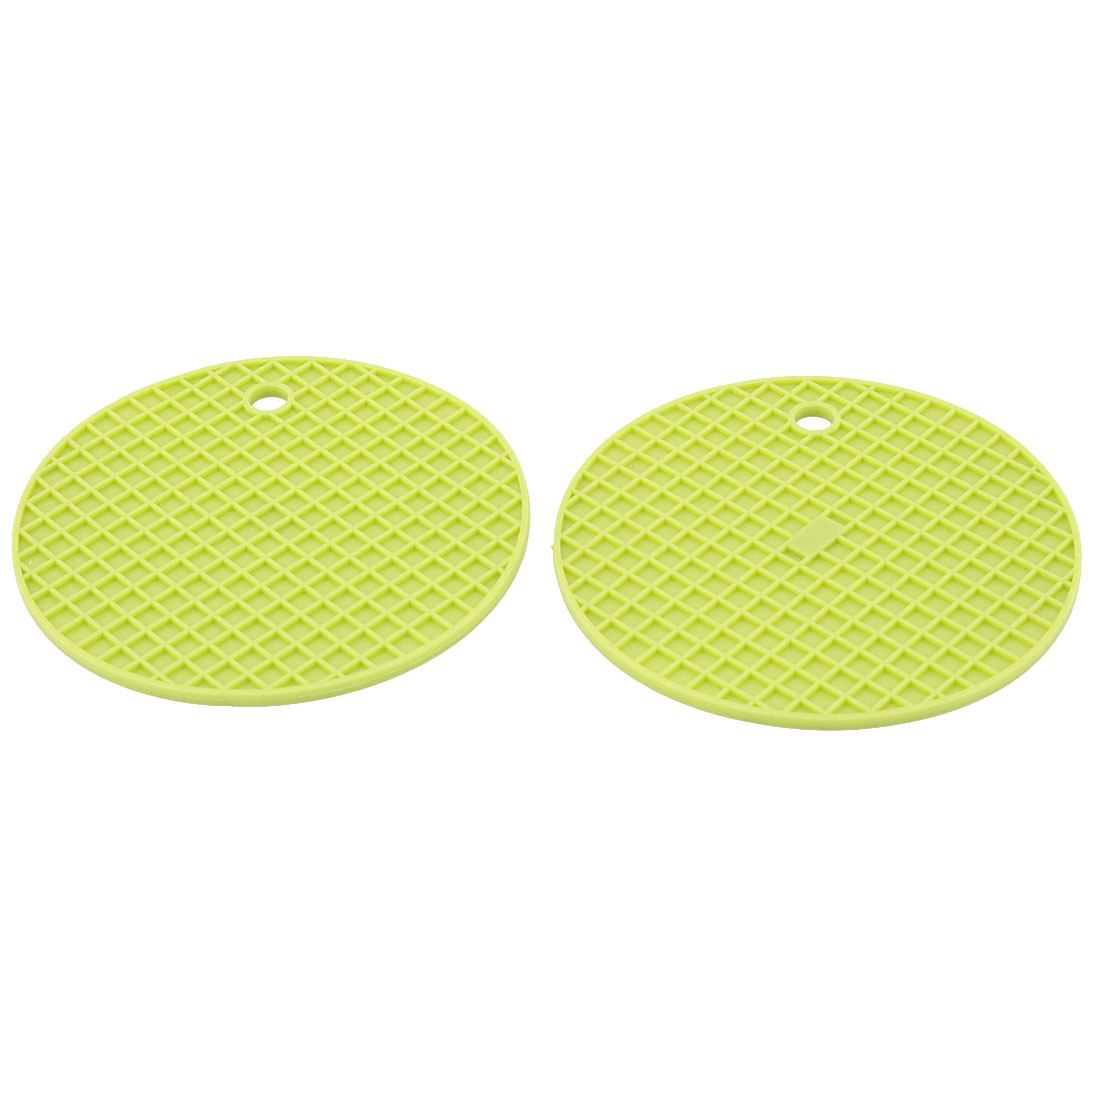 Household Kitchenware Silicone Heat Resistant Non-slip Hot Pot Dish Bowl Holder Insulation Mat Light Green 2 Pcs